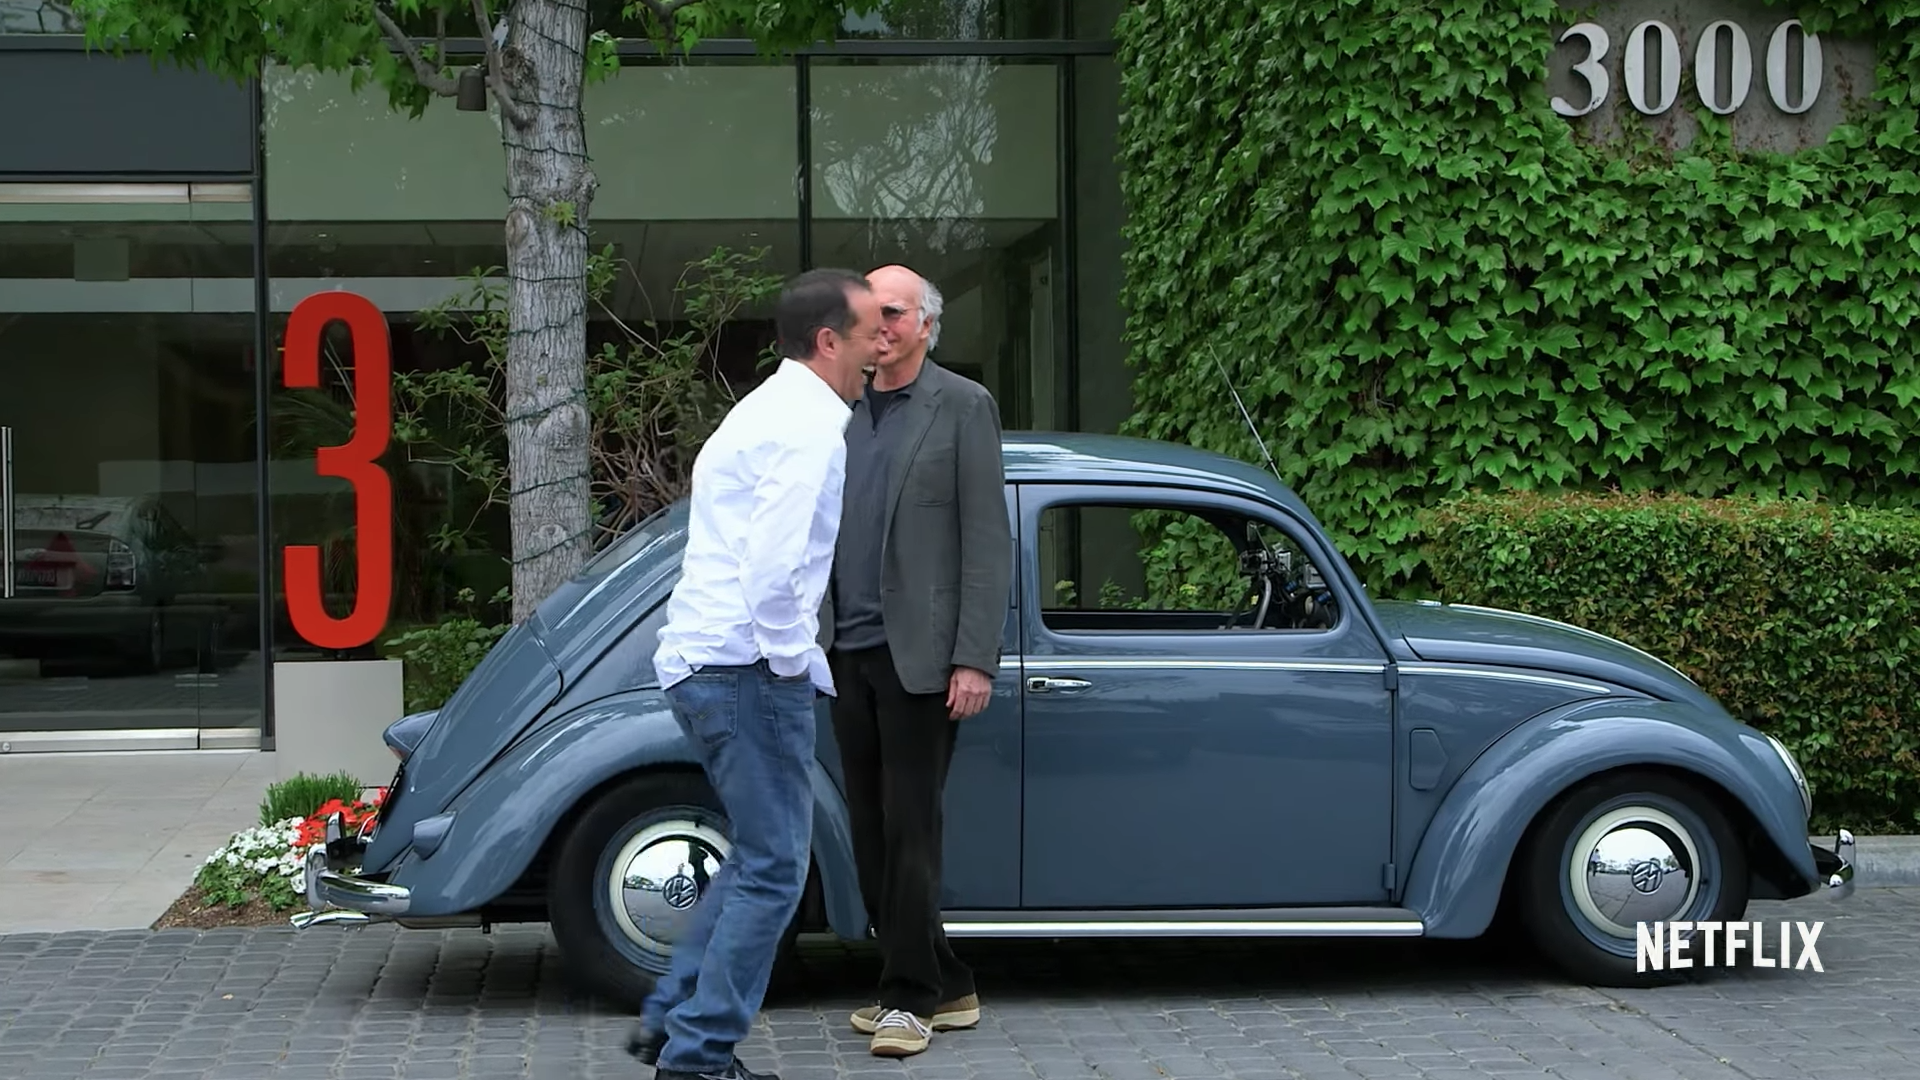 Jerry Seinfeld And Comedians In Cars Getting Coffee Photo By Netflix YouTube